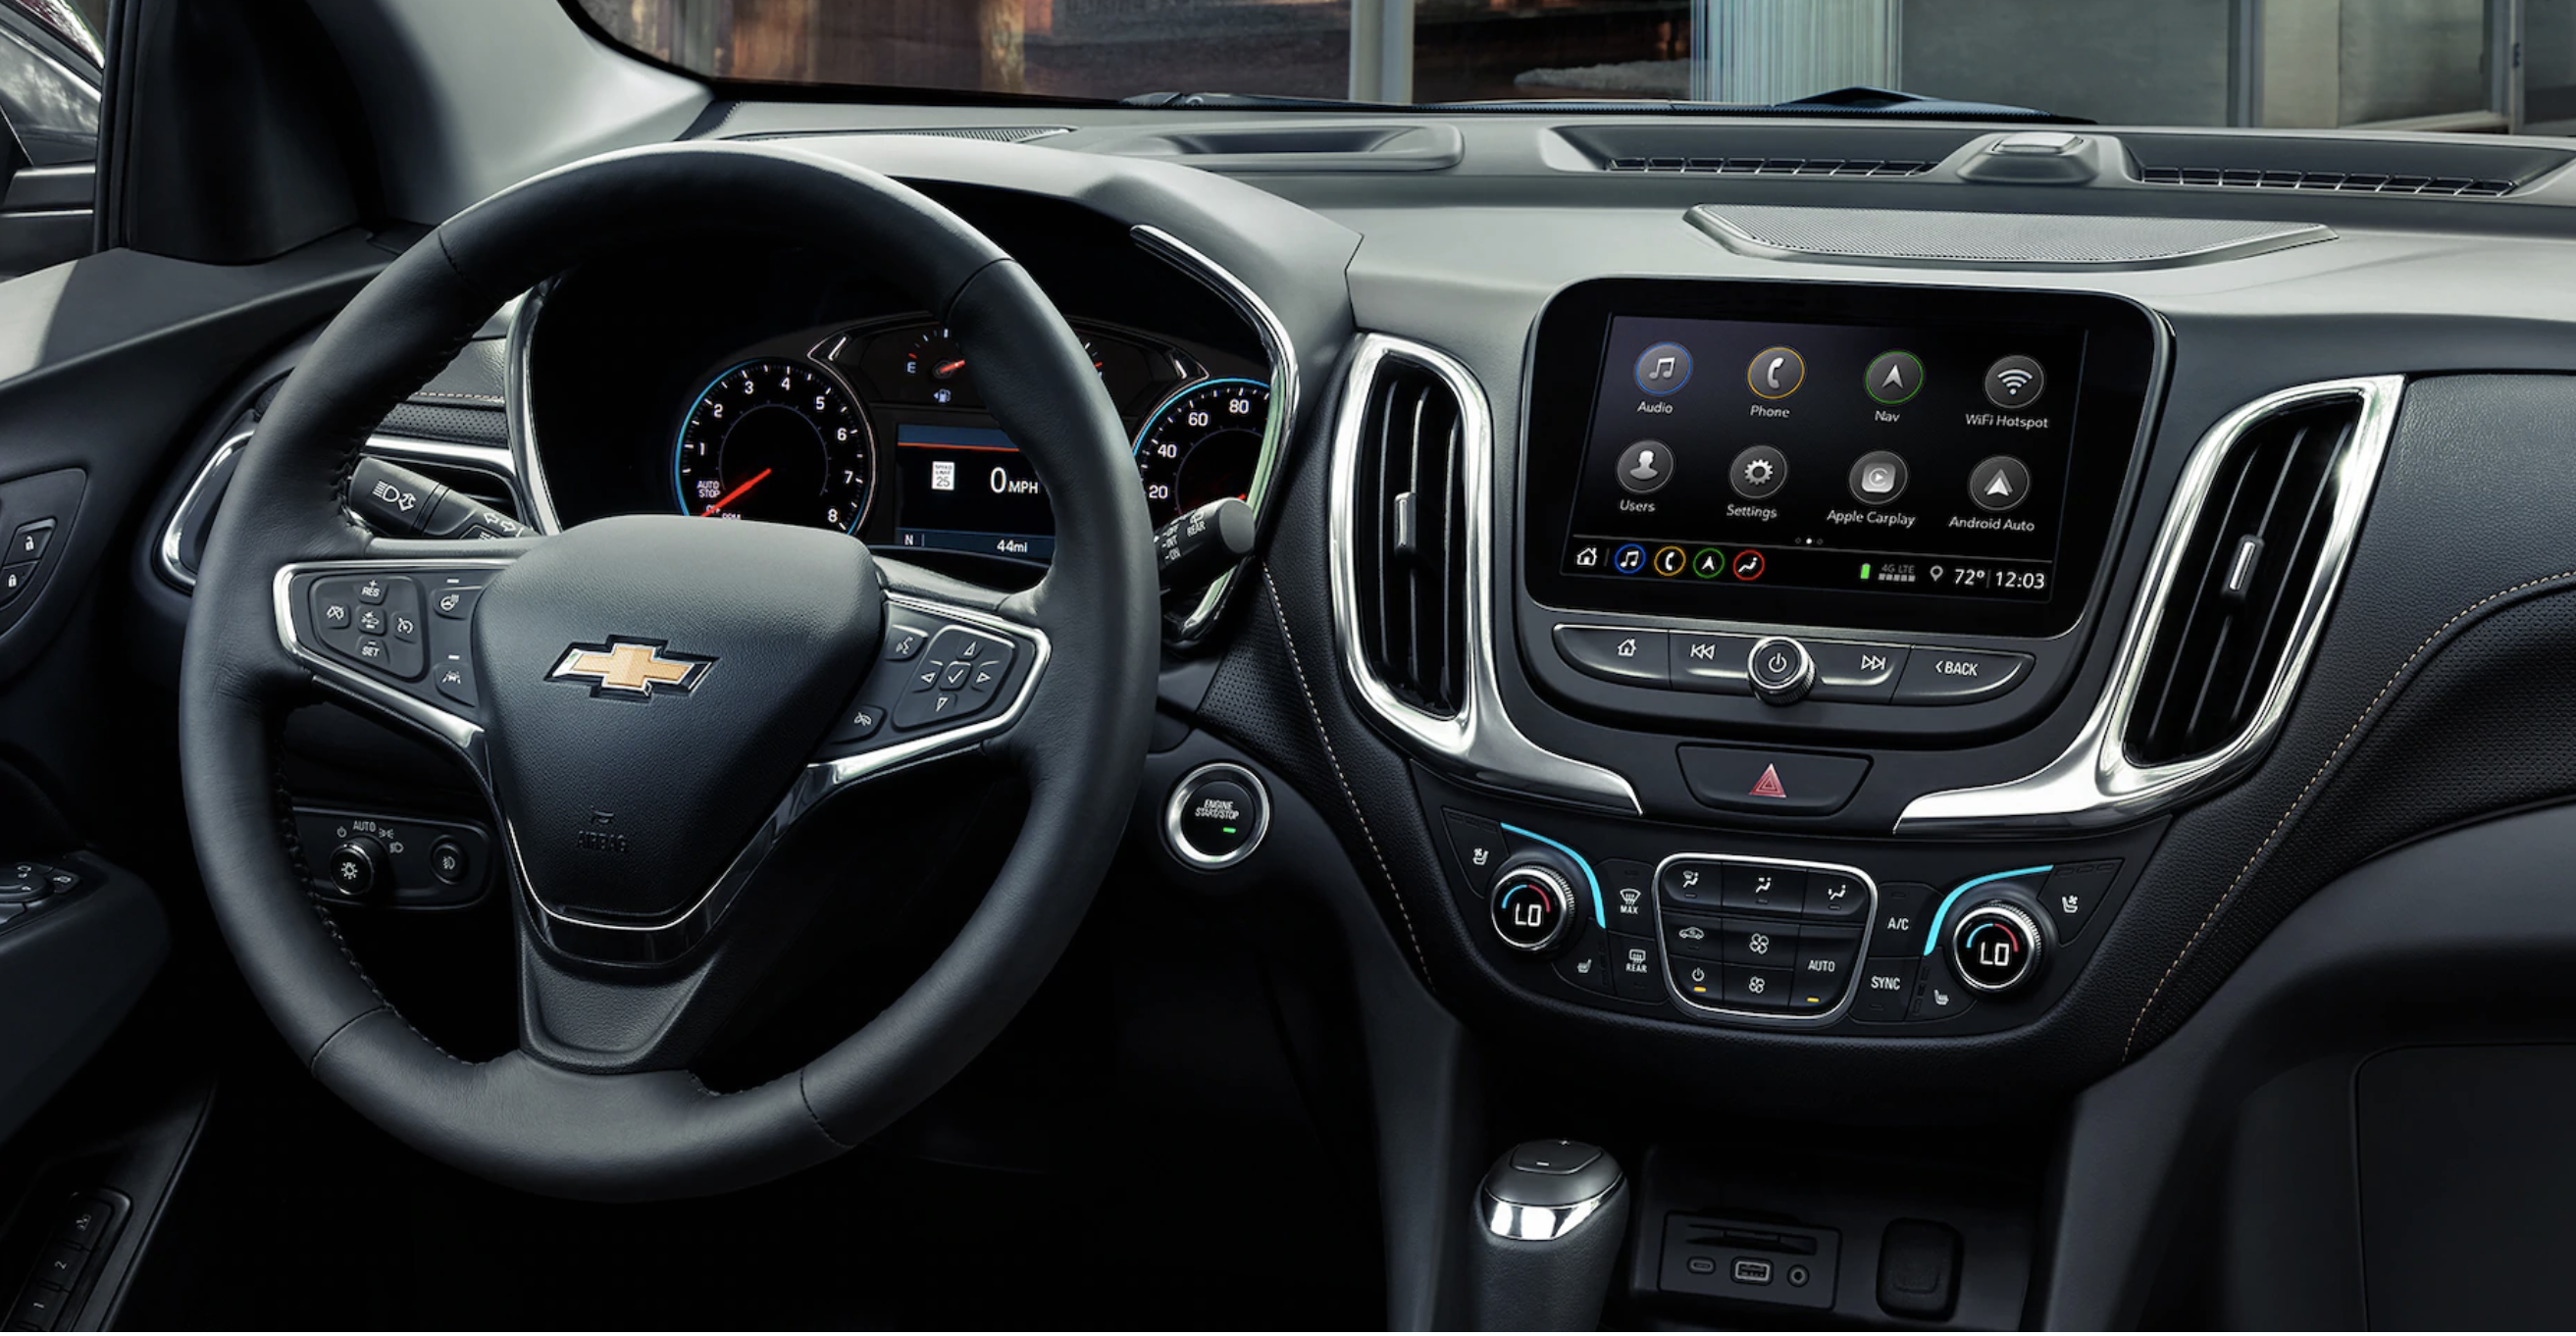 Chevy Connectivity